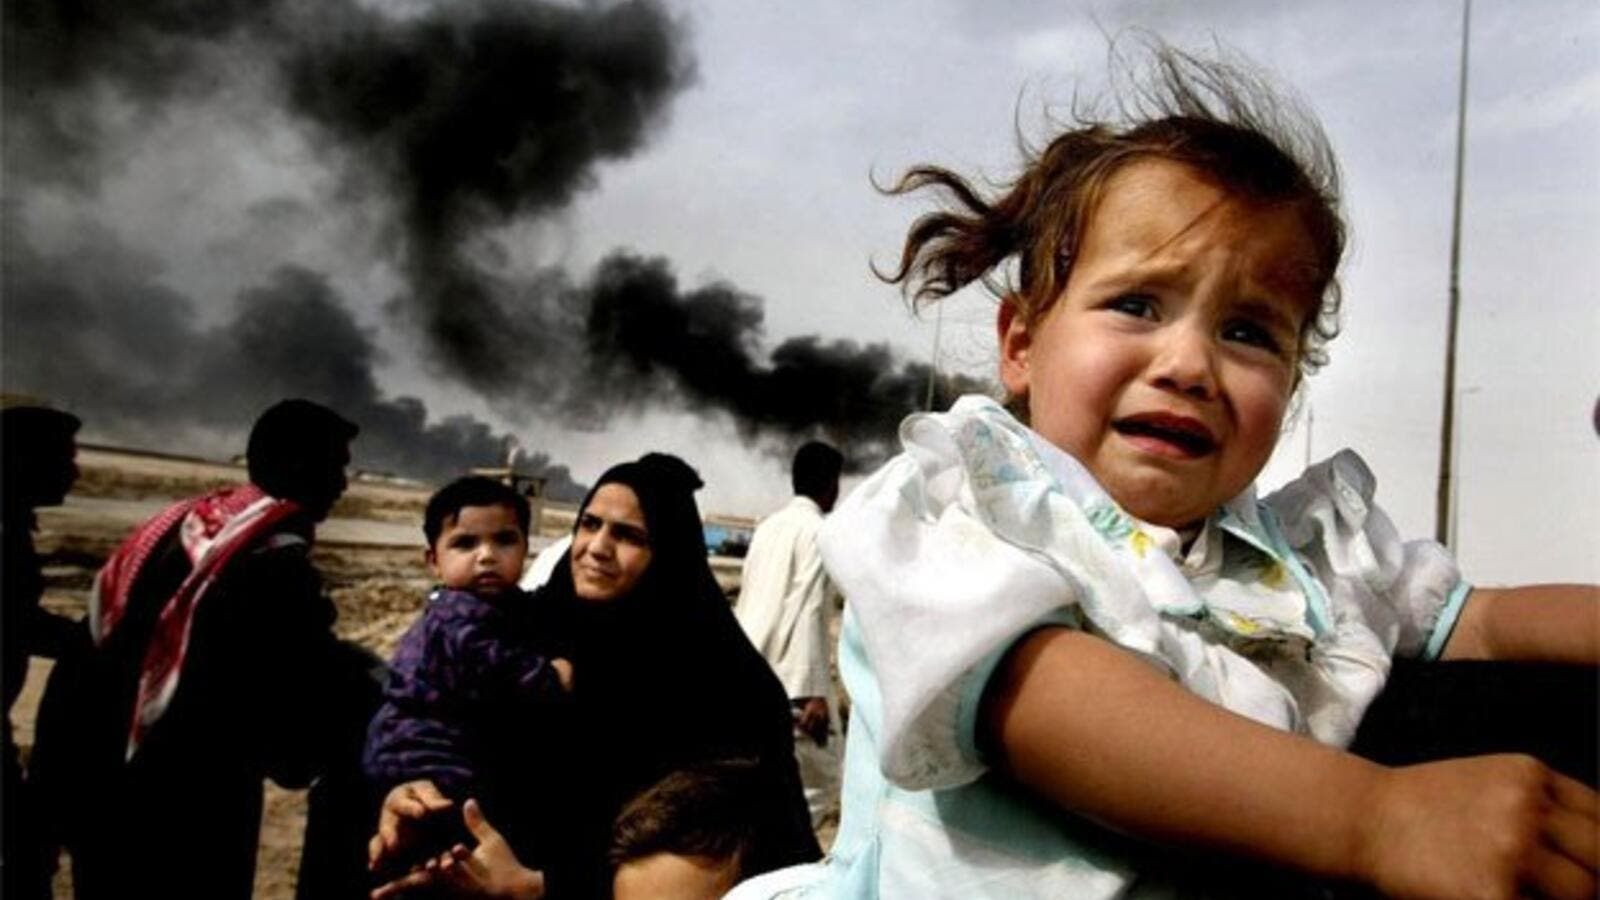 The Iraqi Ministry of Human Rights reported 4,722 people have been killed since June 2014. (AFP/File)